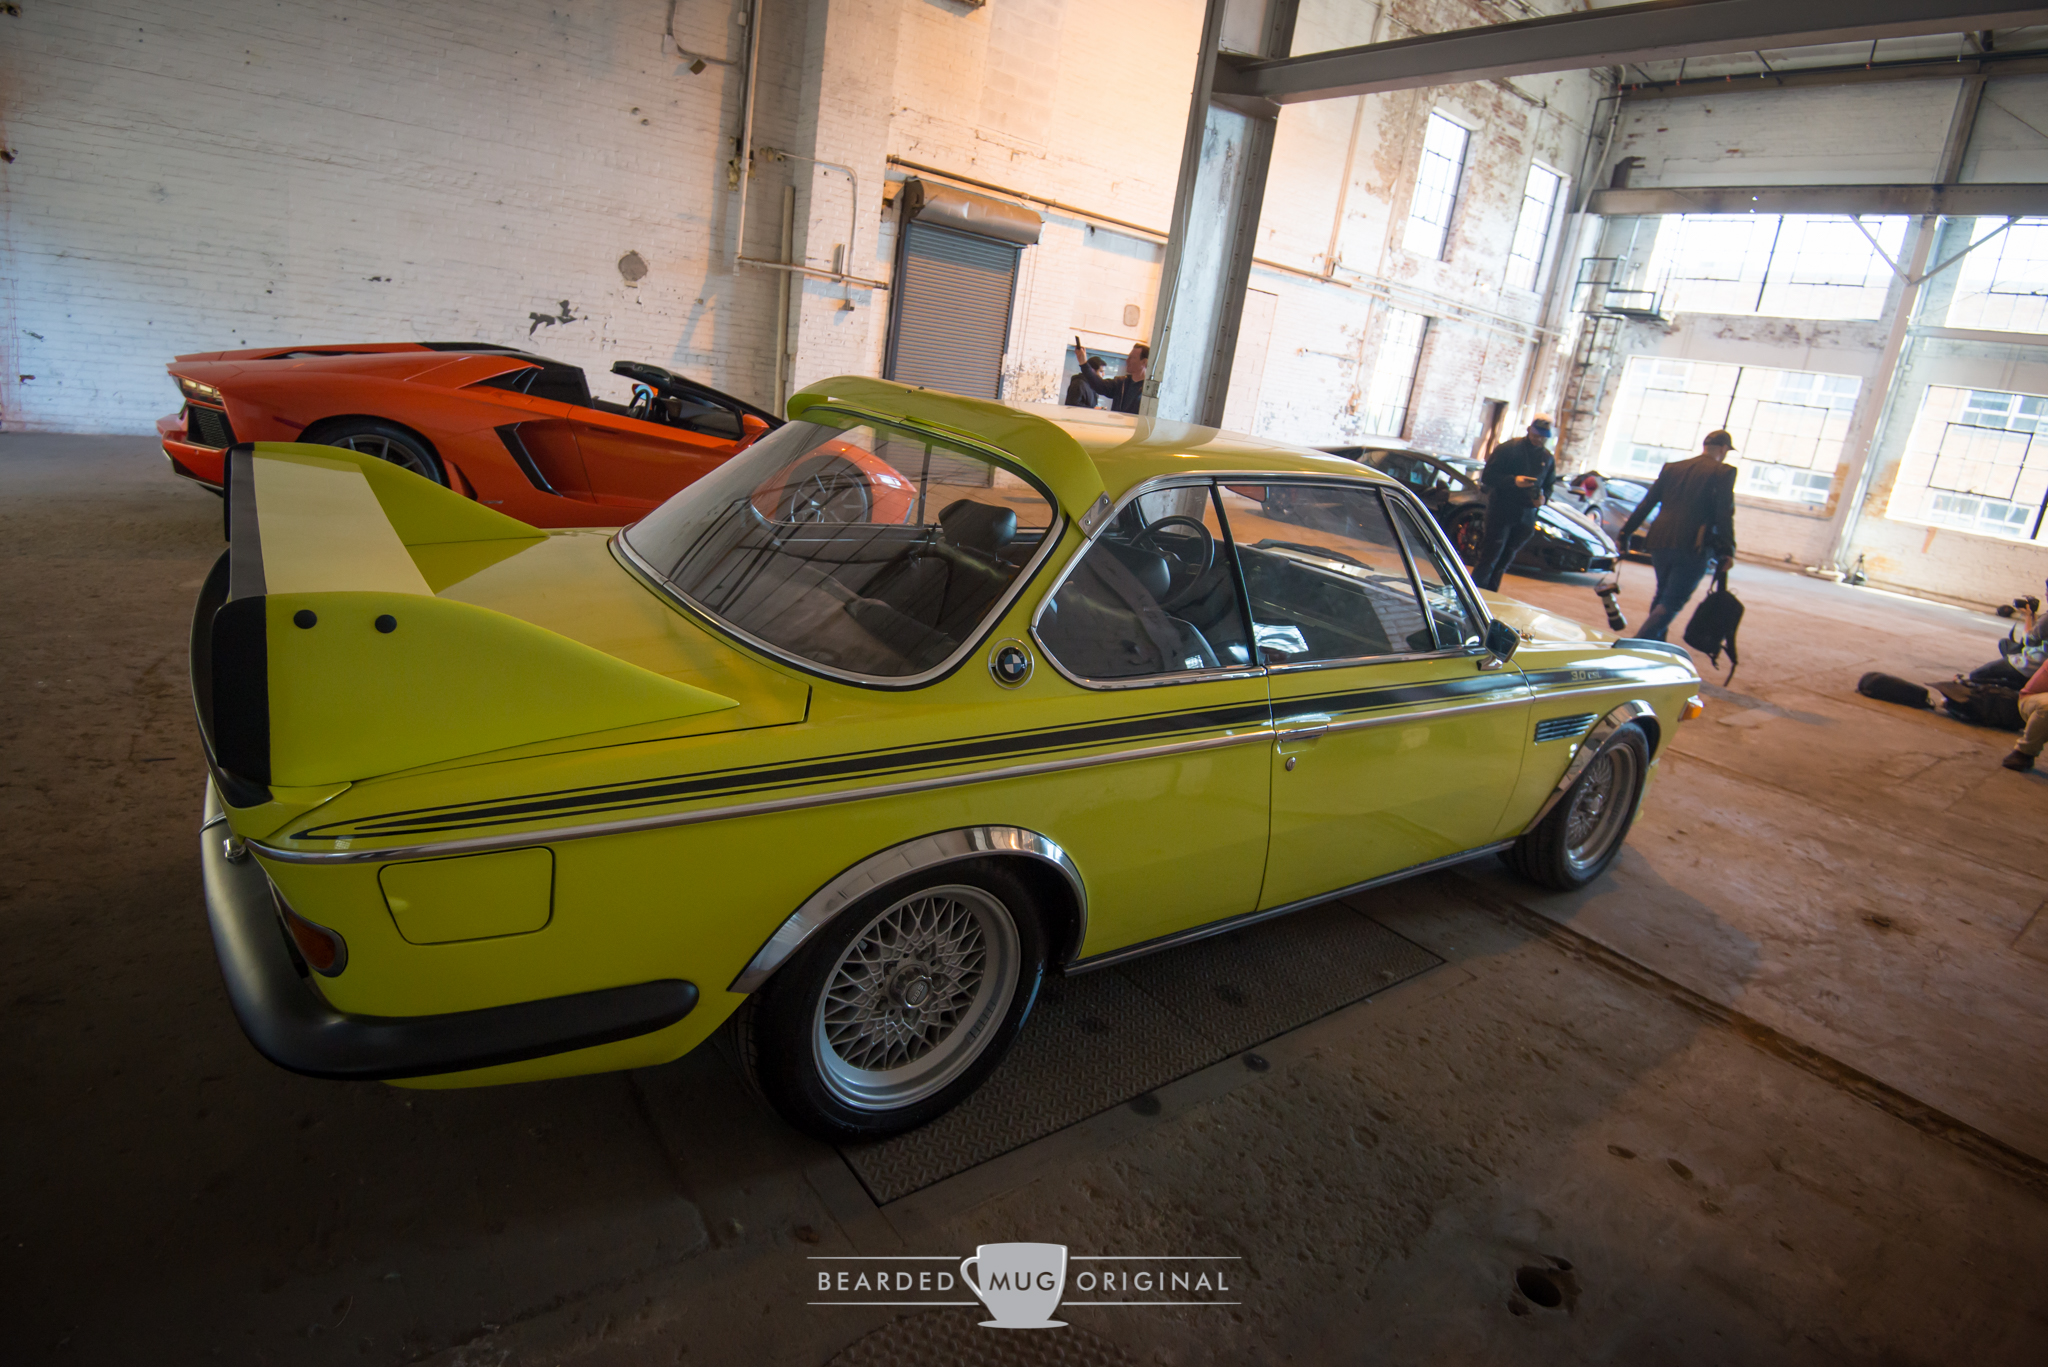 It is in my humble opinion that this BMW 3.0 CSL should have had a better seat at the proverbial table, maybe even usurping the head from the Huracán LP 580-2.